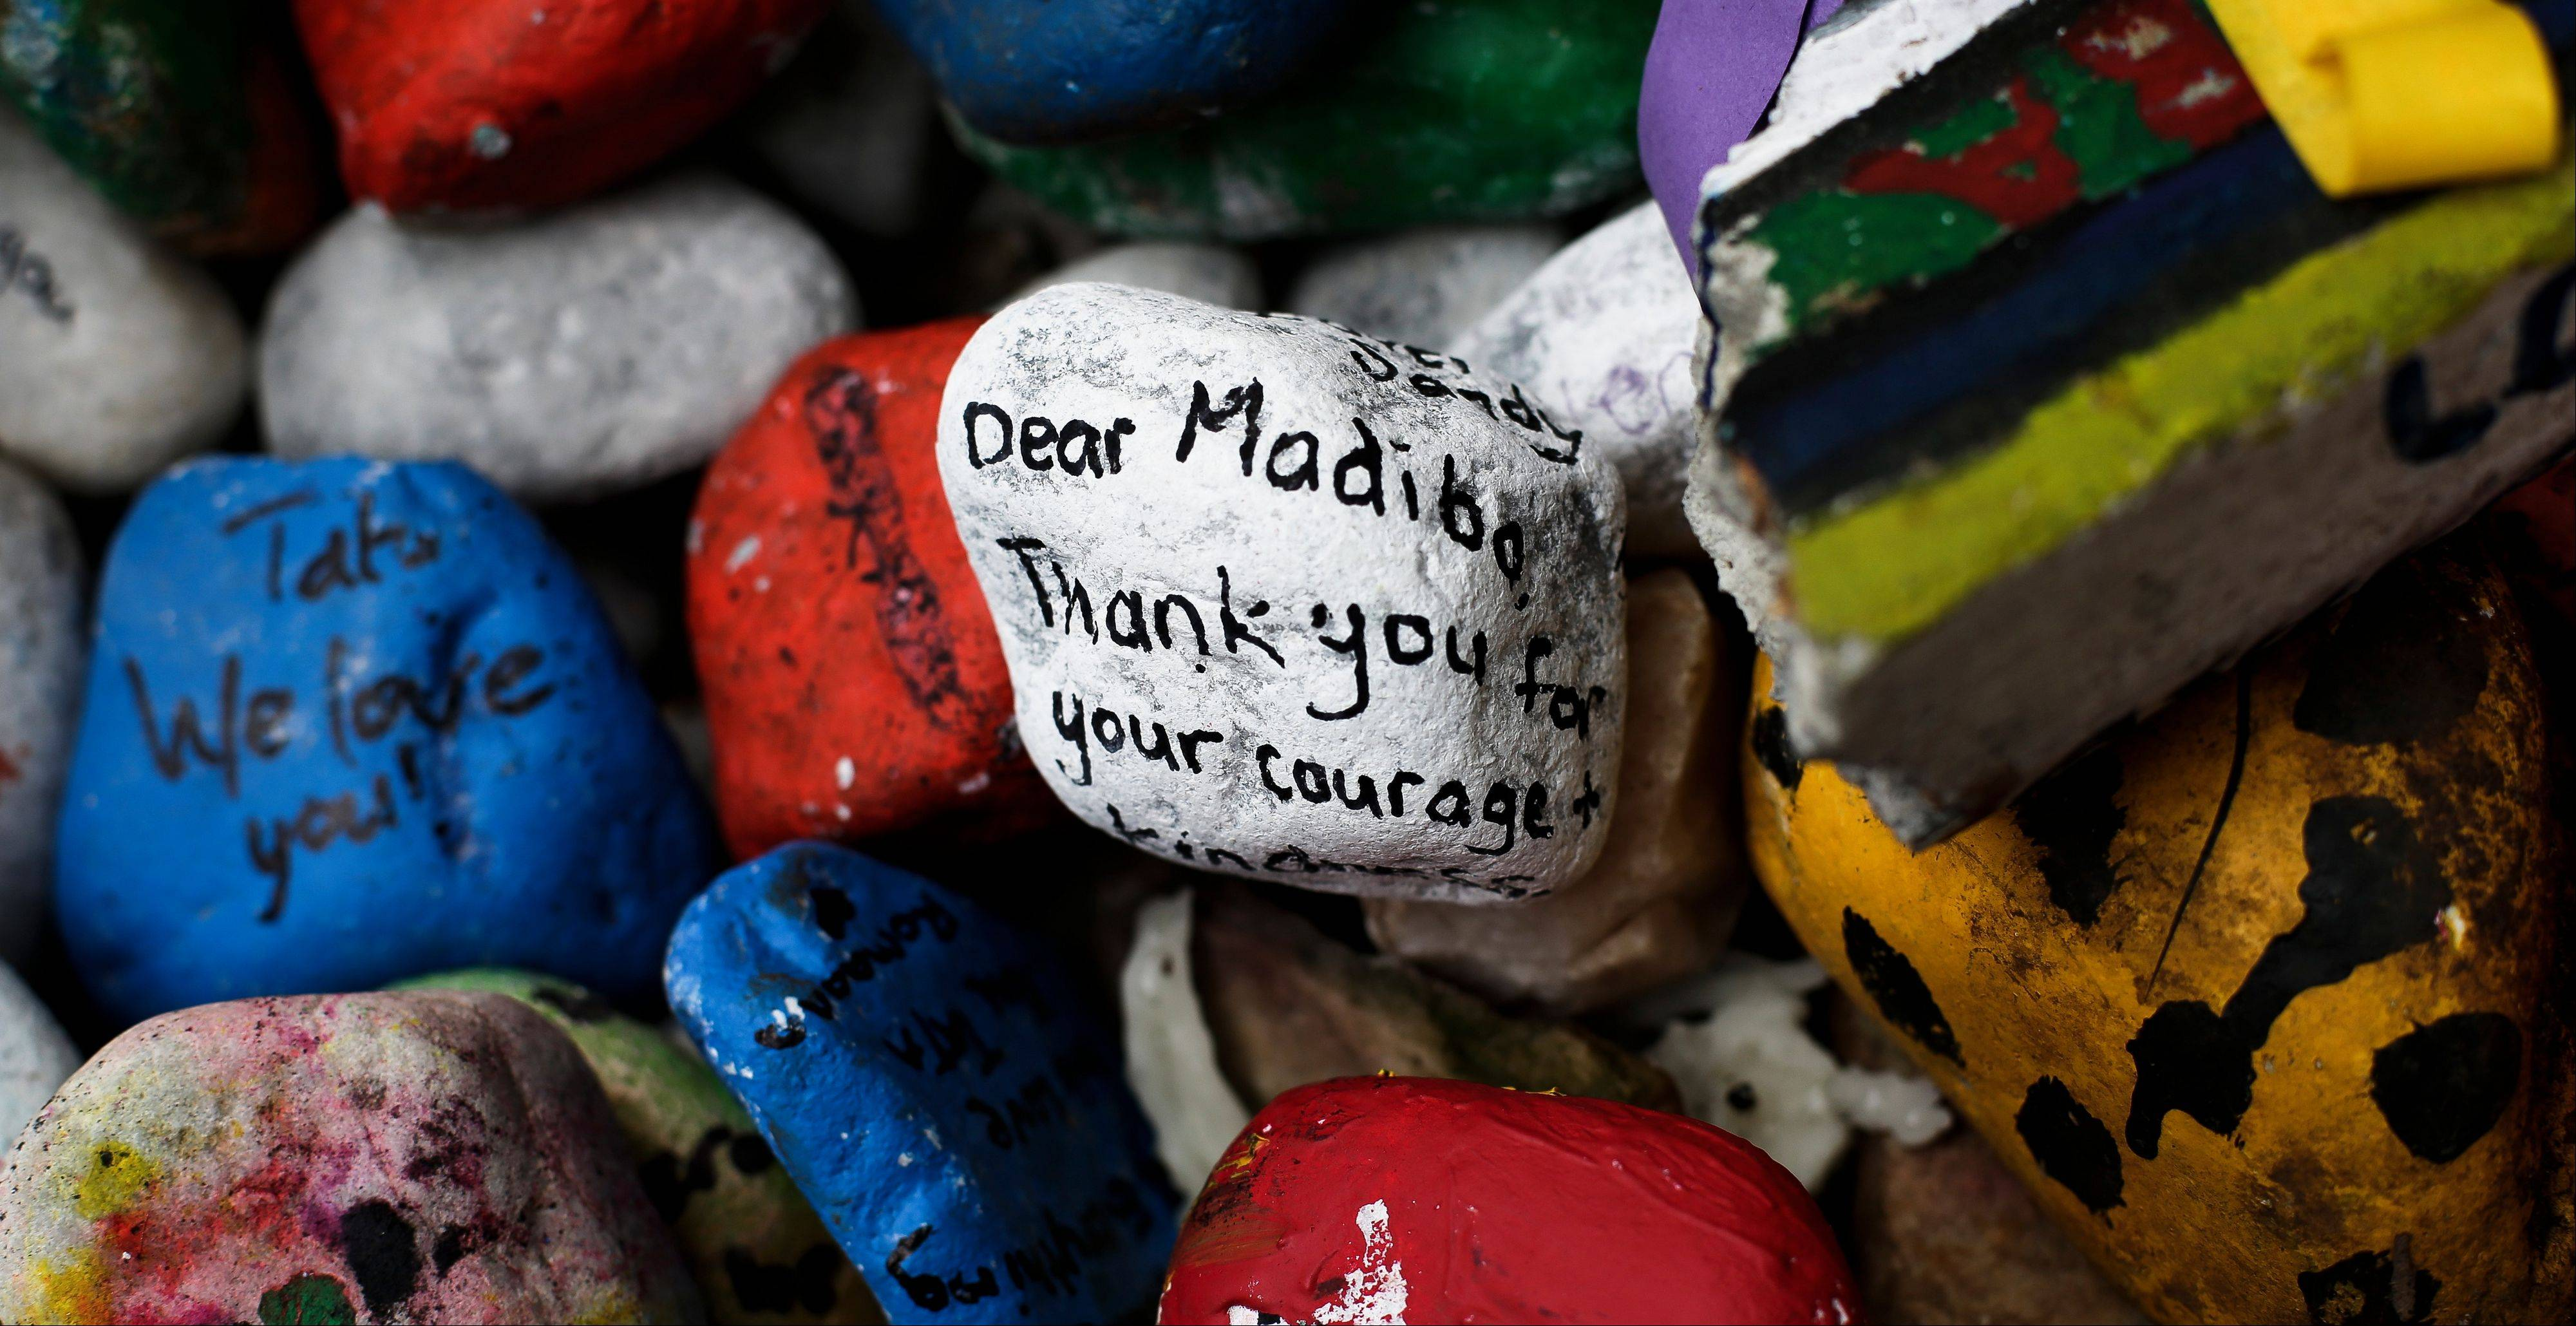 "Stones with well wishes in support of former South African President Nelson Mandela lay in front of his house in Johannesburg, South Africa, Friday, July 5, 2013. Mandela, who was hospitalized on June 8, remains in critical but stable condition according to the office of President Jacob Zuma, who visited the anti-apartheid leader on Thursday, and the president's office also said doctors denied reports that 94-year-old Mandela is in a ""vegetative state."""